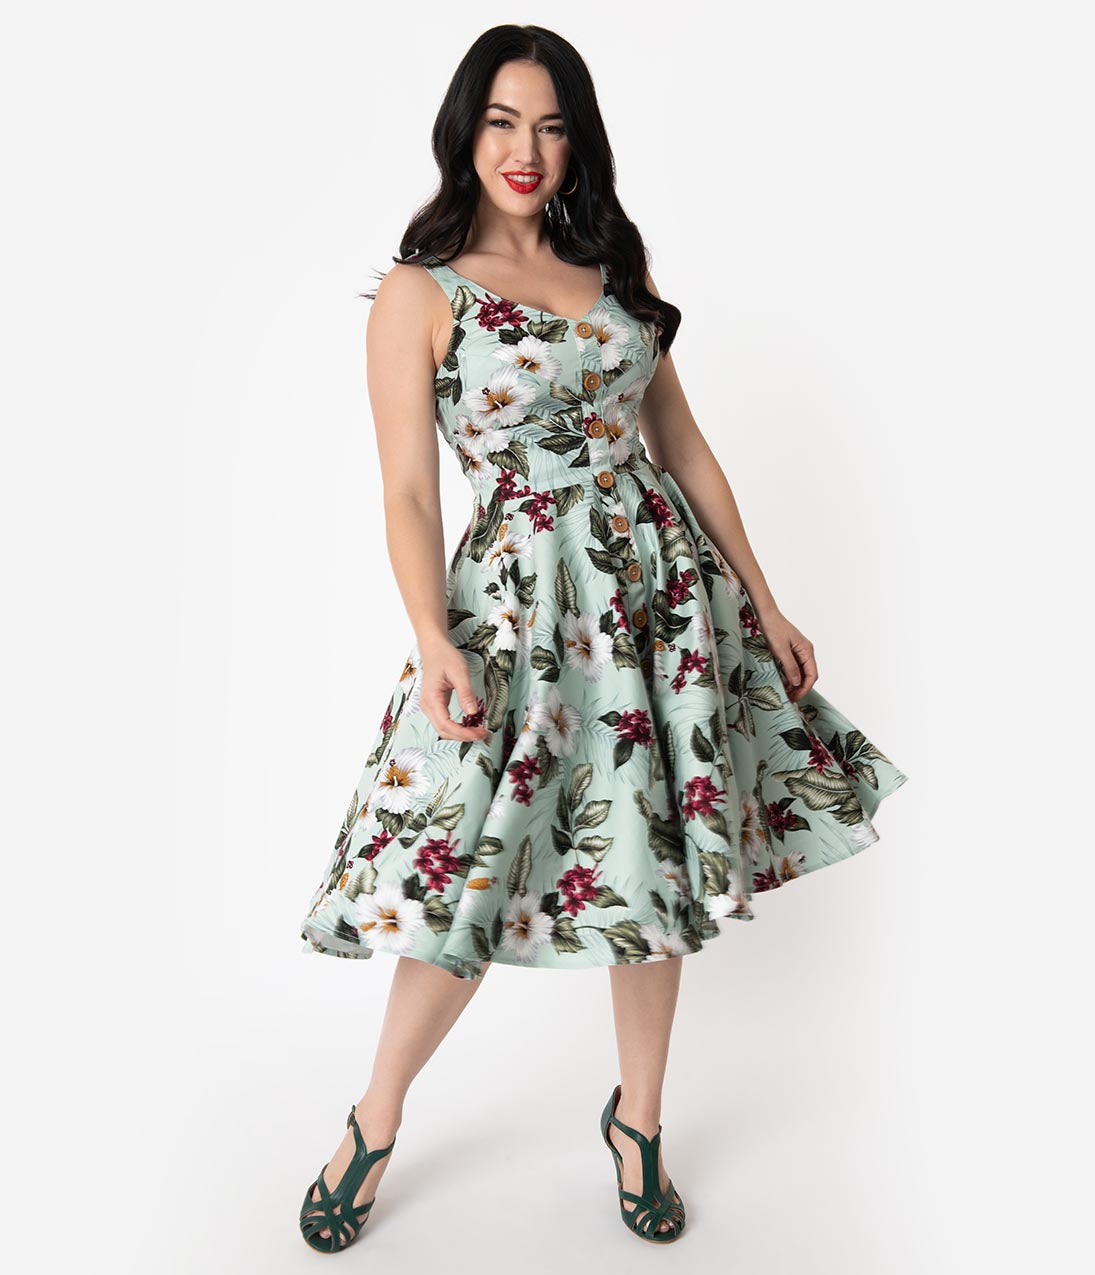 02d86f15cb1b New Fifties Dresses | 50s Inspired Dresses Hell Bunny 1950S Style Mint  Floral Print Tahiti Swing